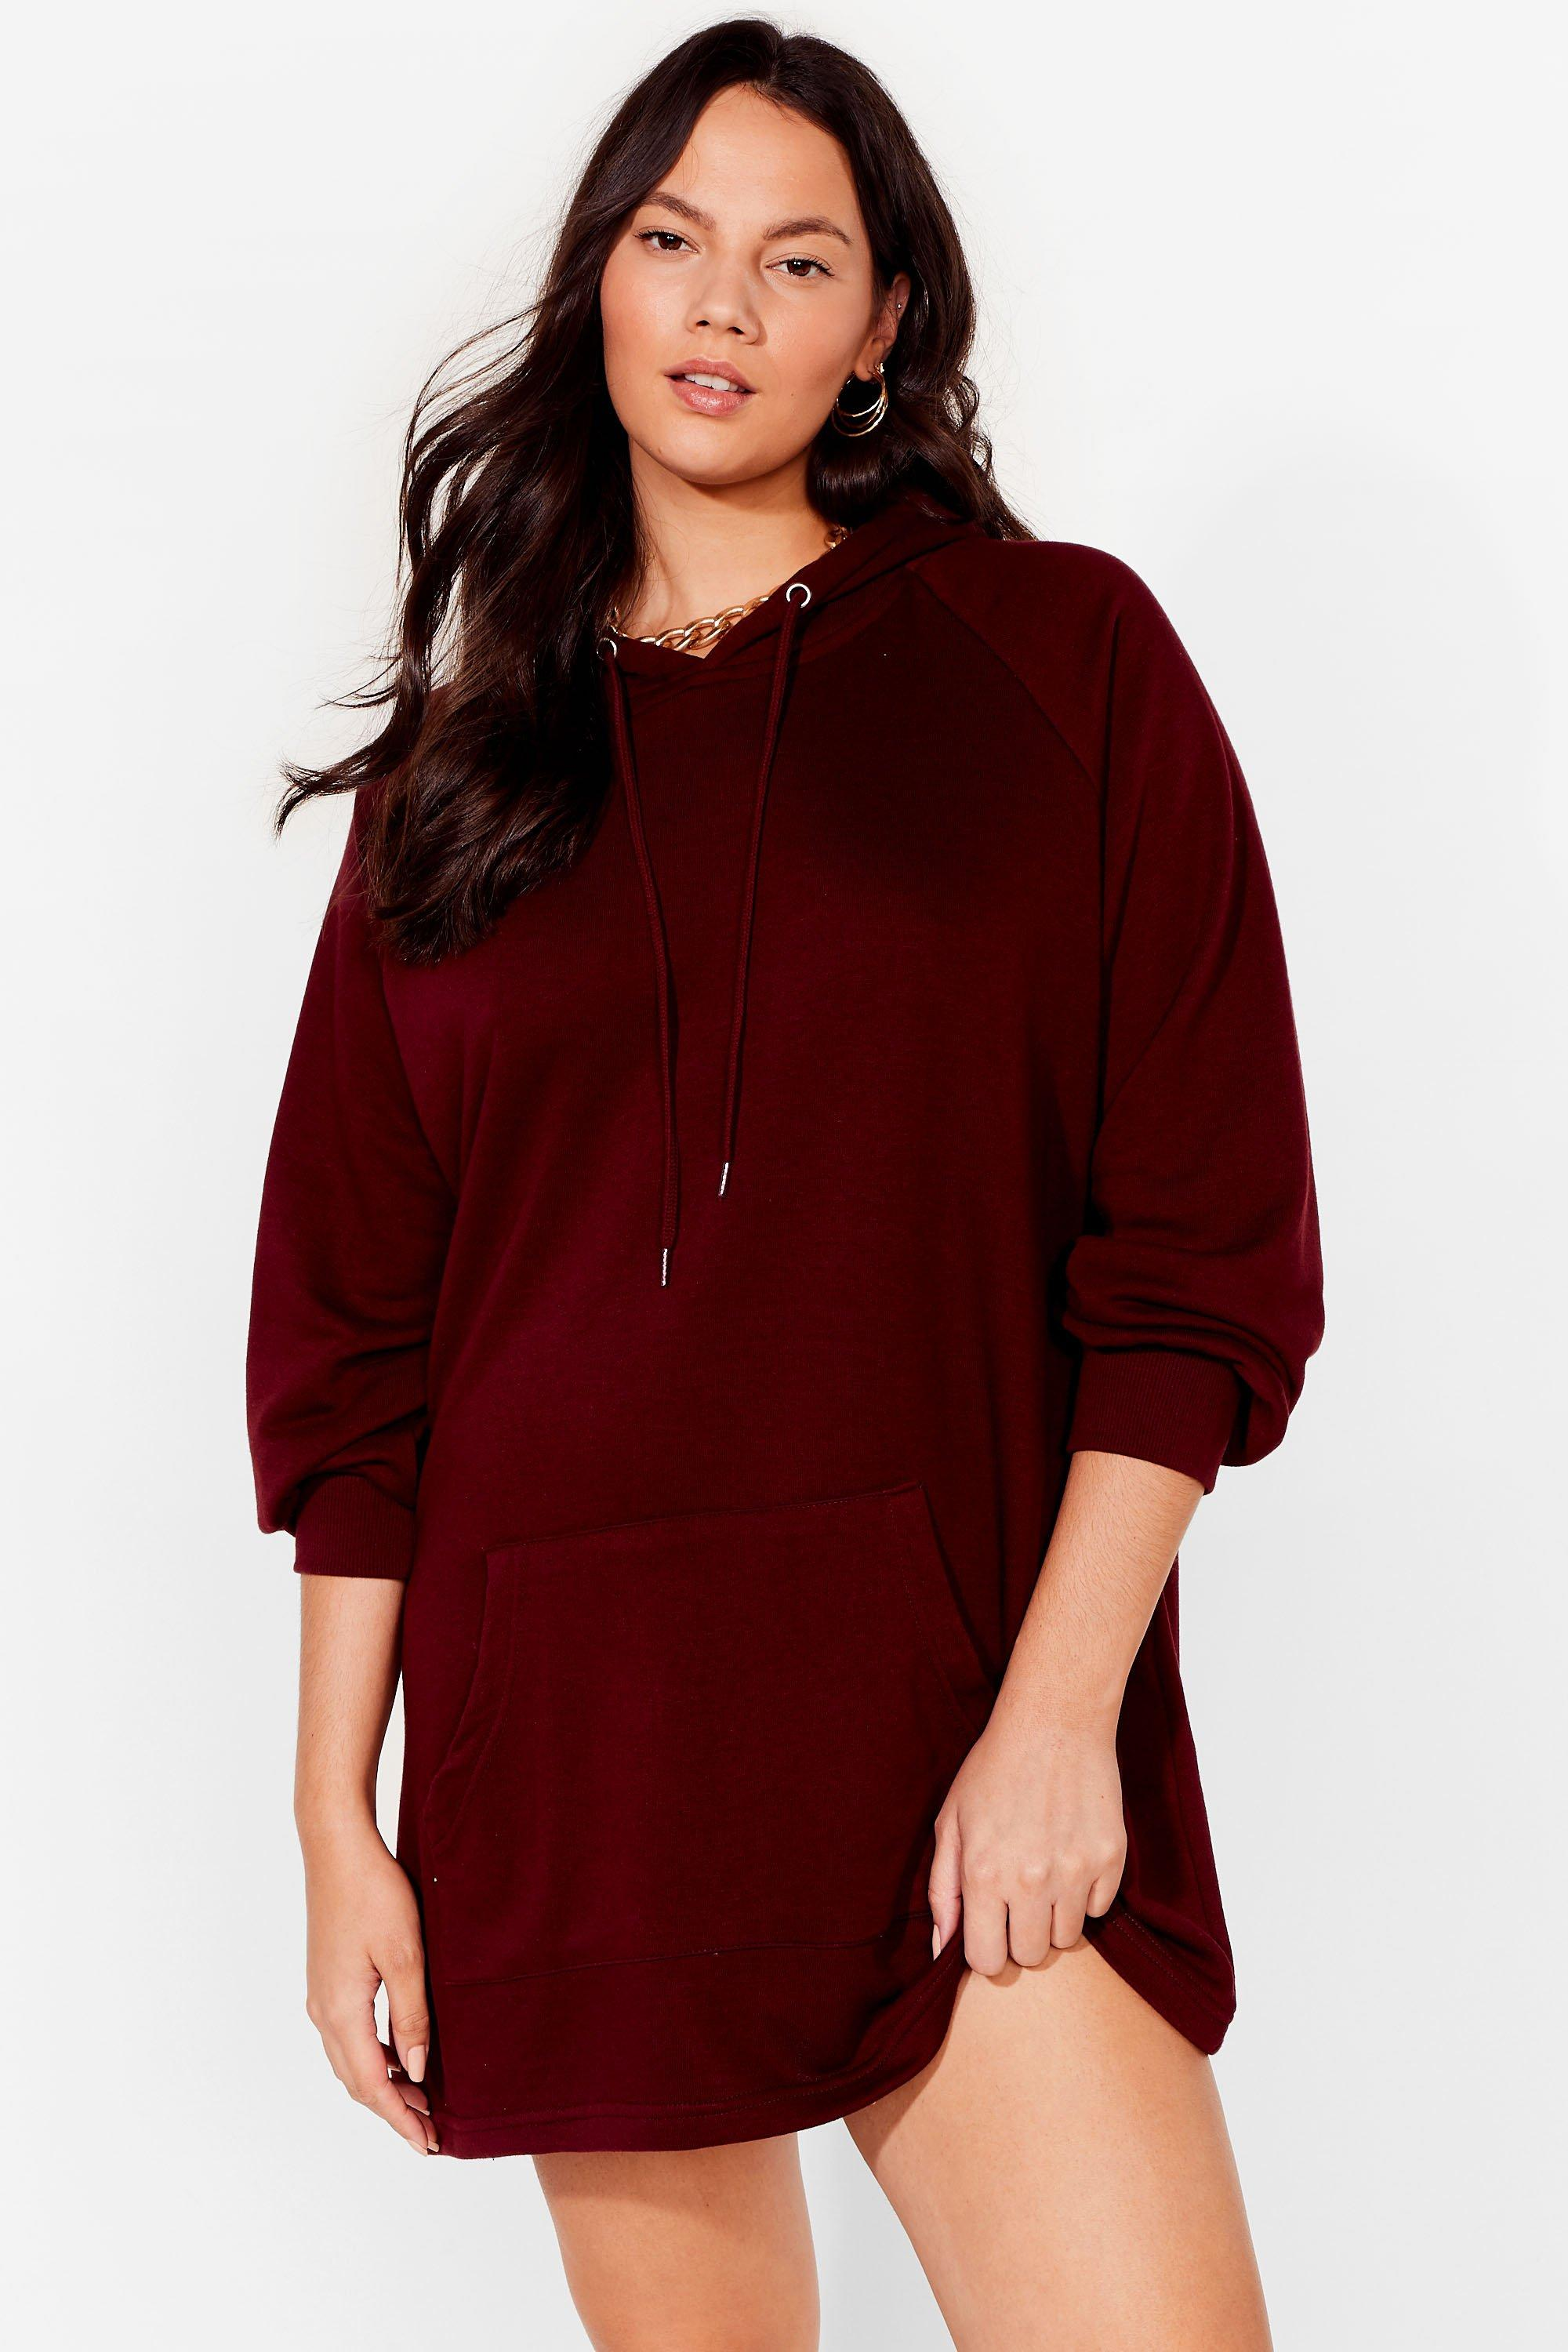 All Night Longline Plus Sweatshirt Dress 13